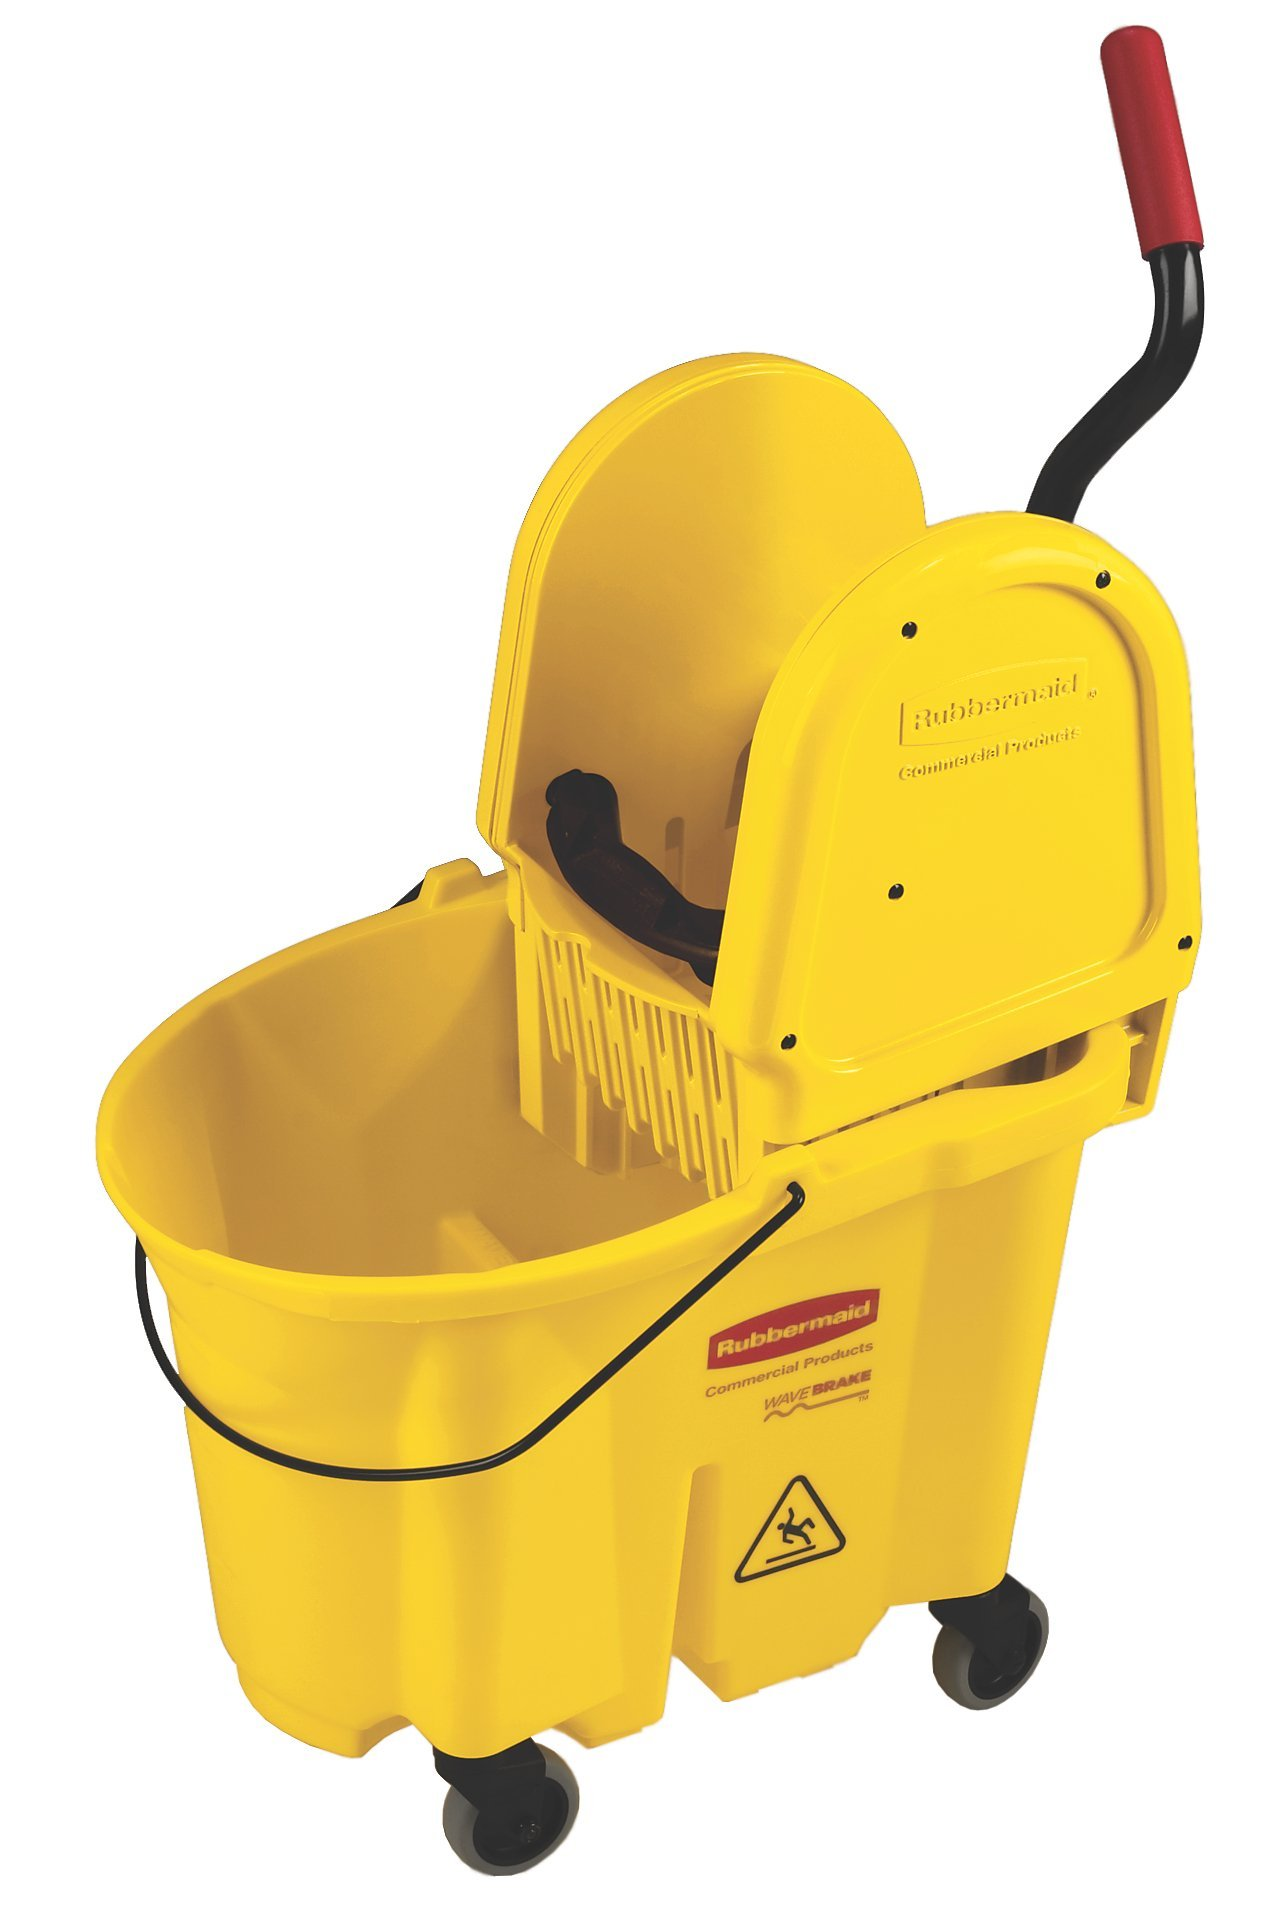 Rubbermaid Commercial WaveBrake Mop Bucket with Down Press Wringer Institutional Combo, 35 Quart, Yellow, FG757900YEL